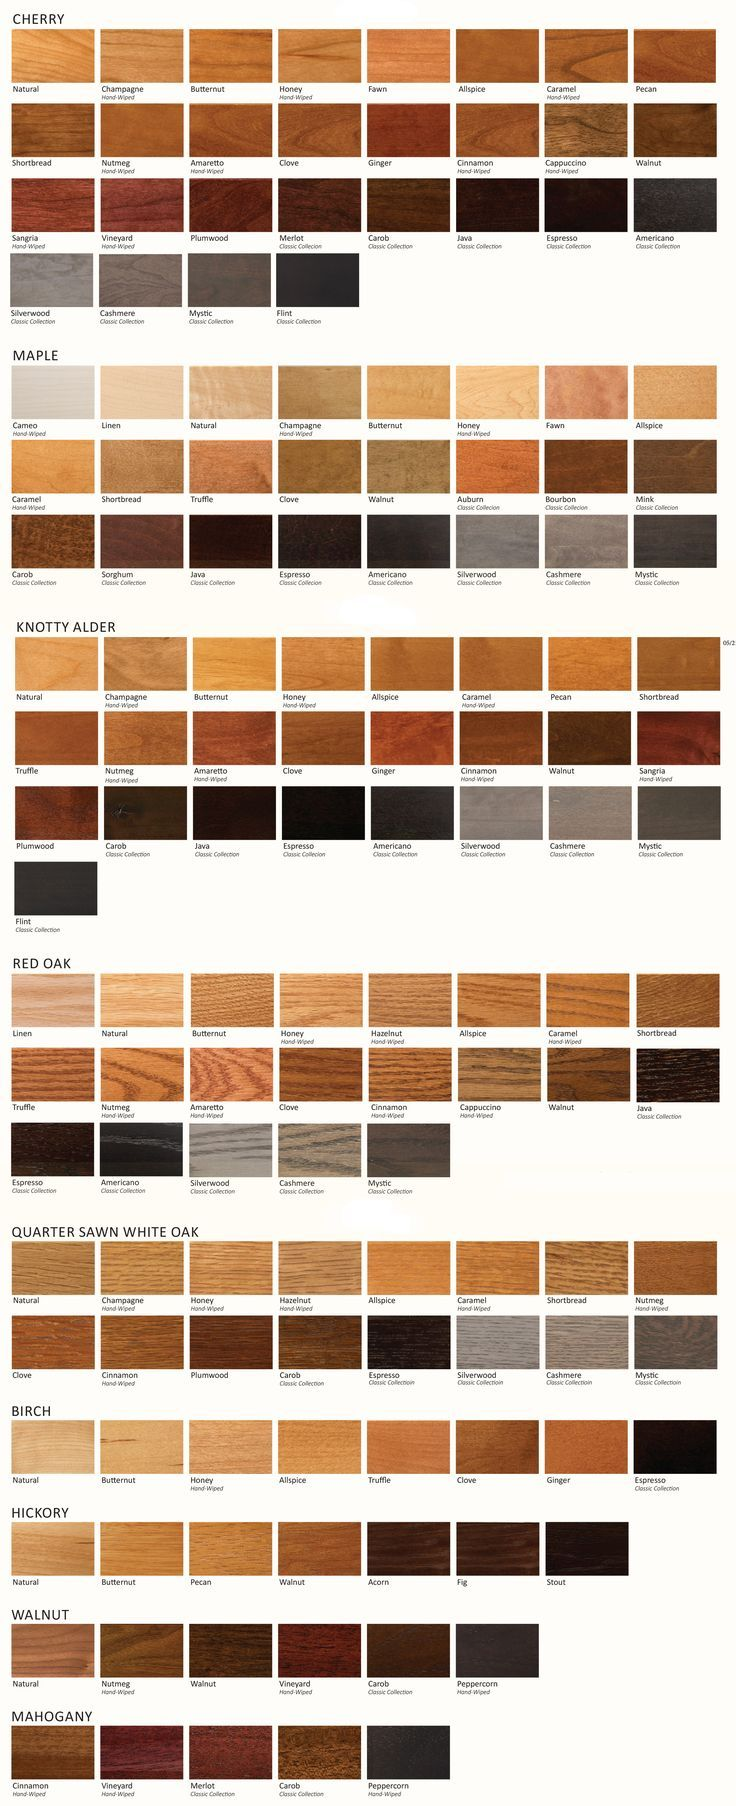 Which Floor Color In Fake Wood Looks Best With Dark Red Kitchen Cabinets